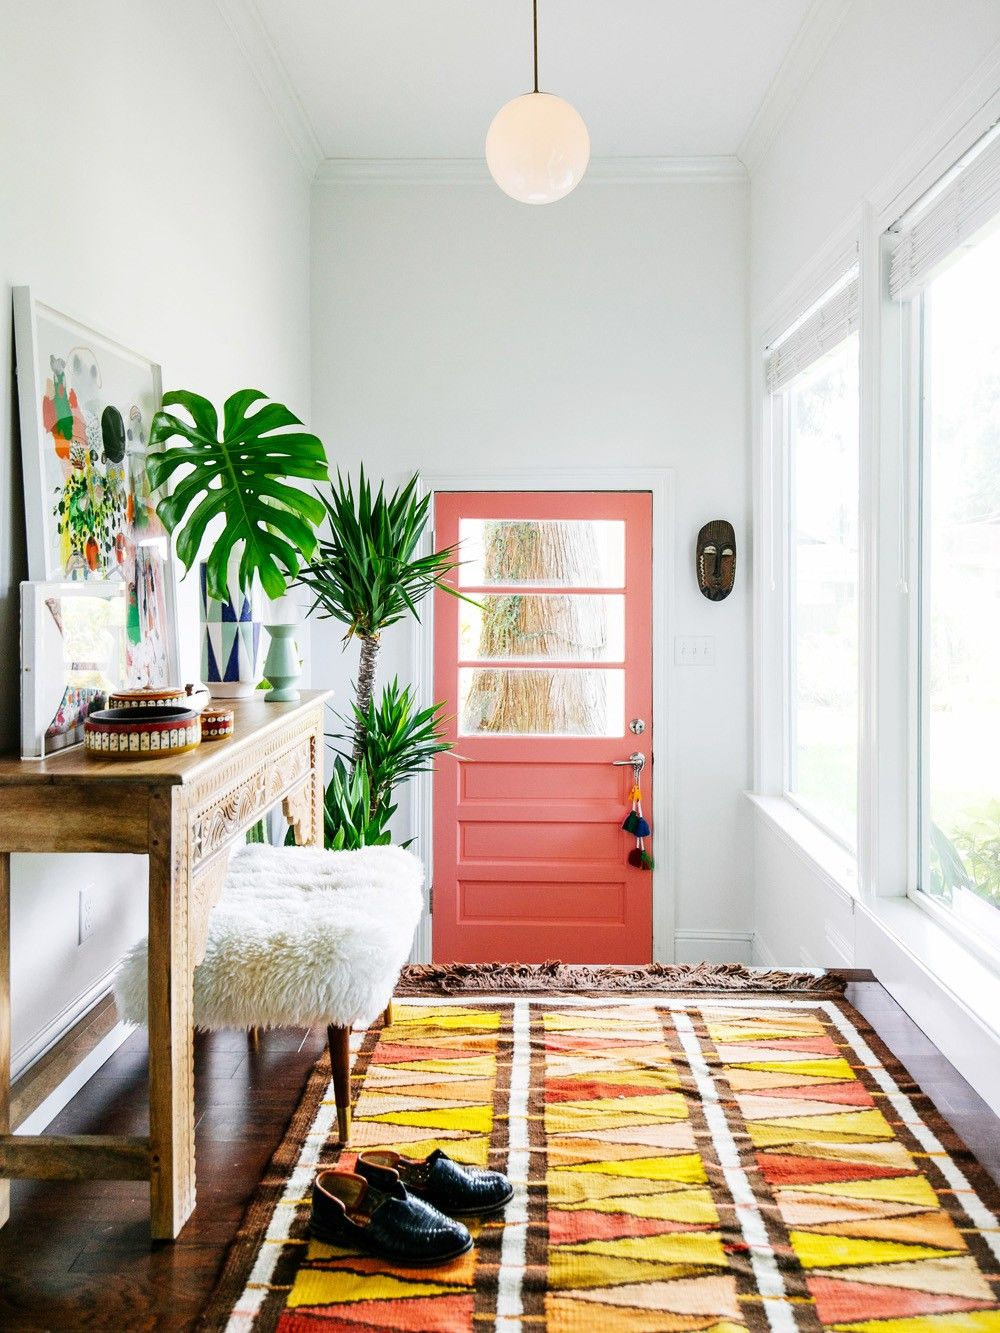 Forum on this topic: 10 of the Best Home Bloggers to , 10-of-the-best-home-bloggers-to/